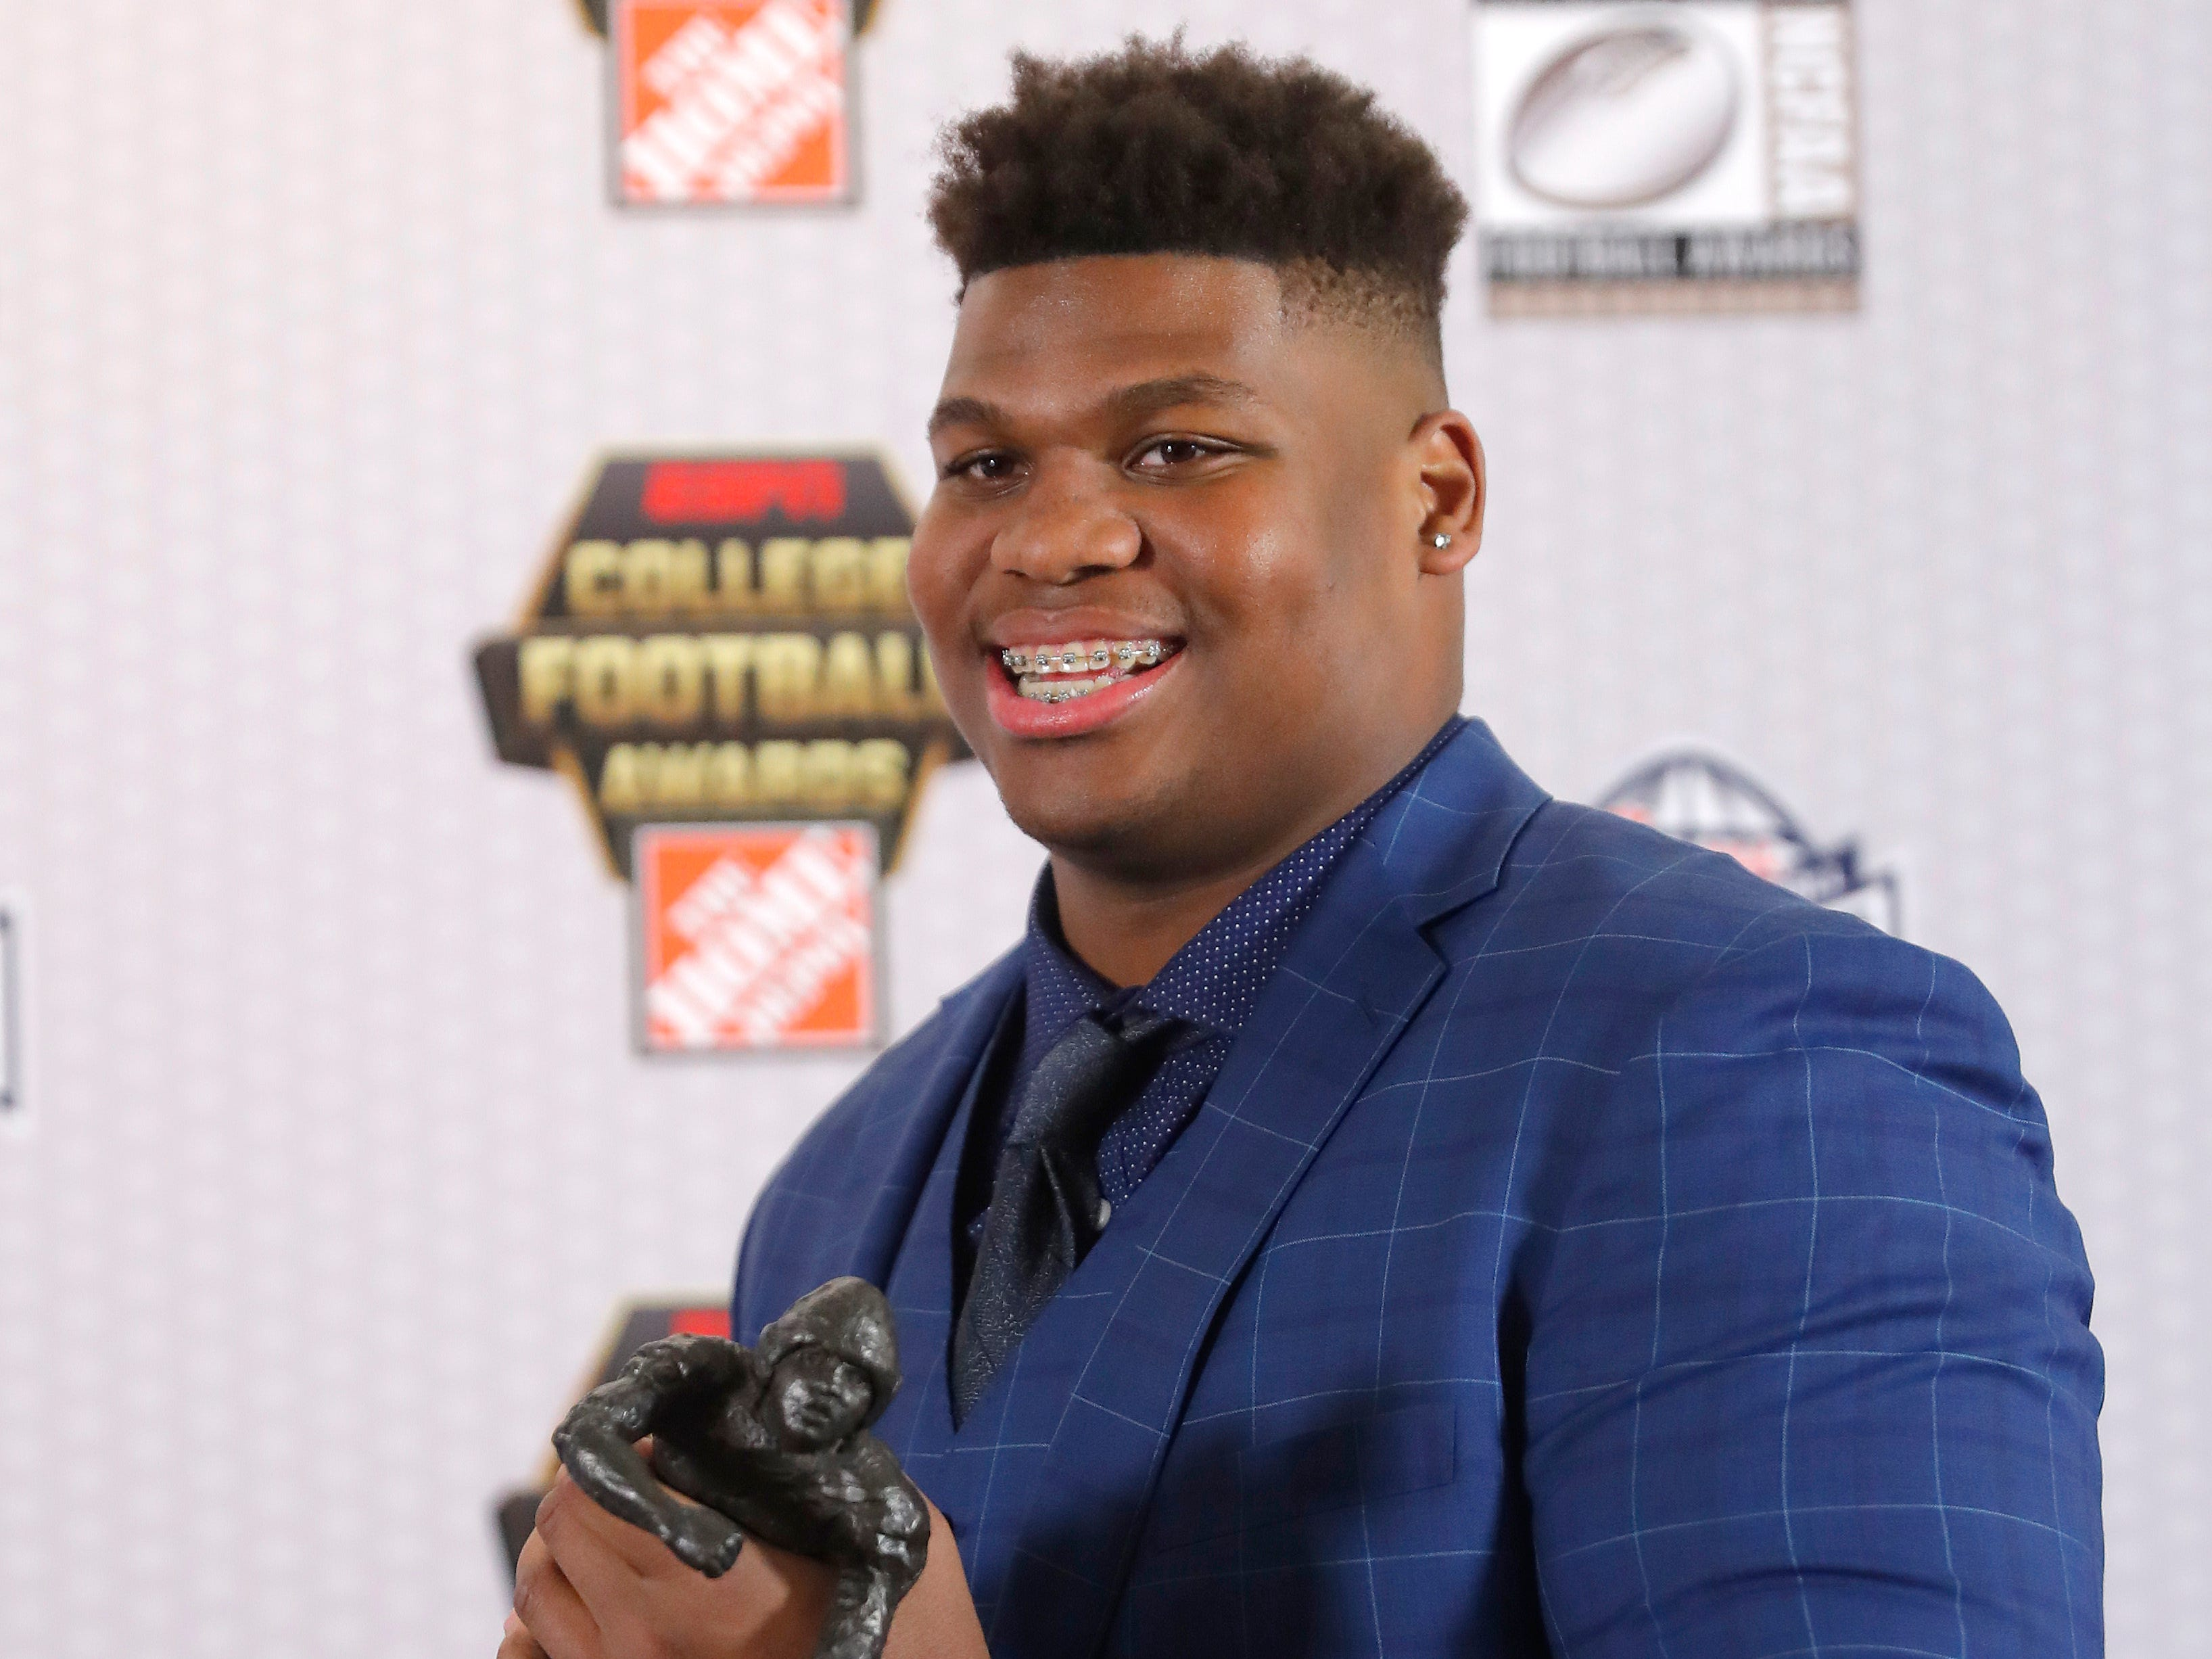 Alabama's Quinnen Williams poses with the trophy after winning the Outland Trophy as the nation's best interior lineman in college football.